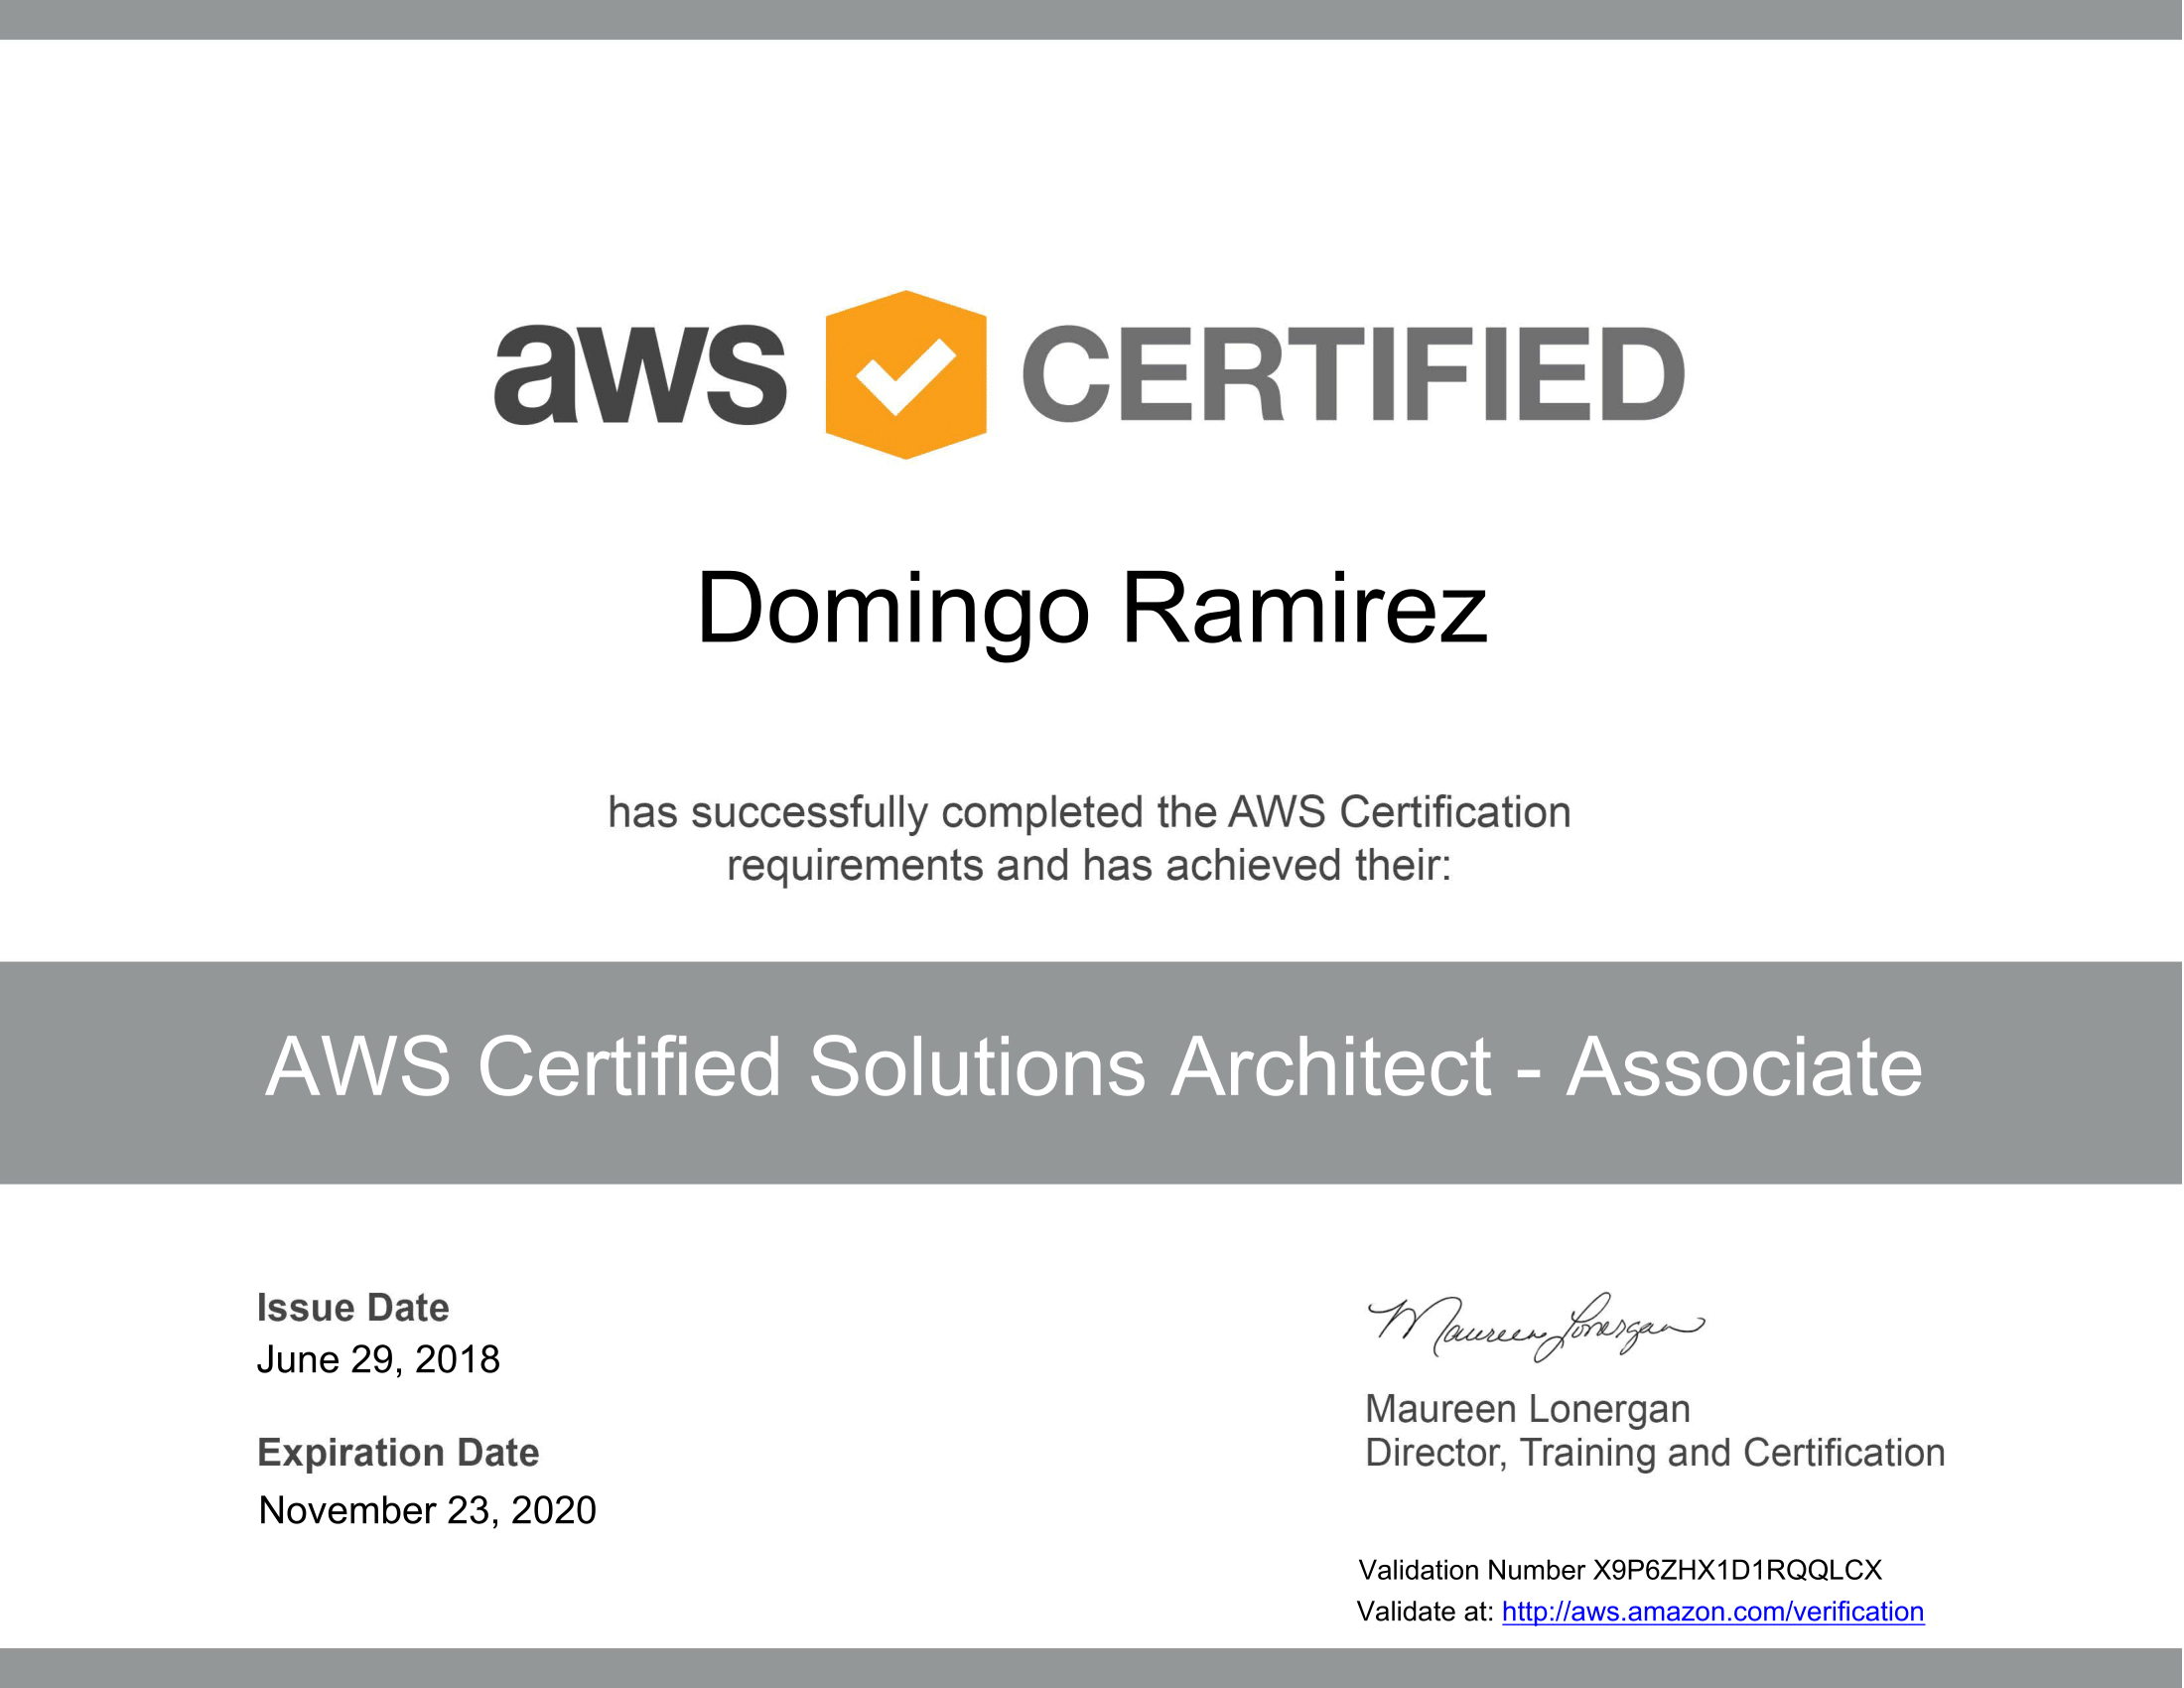 AWS Certified Solutions Architect - Associate certificate (1)-1